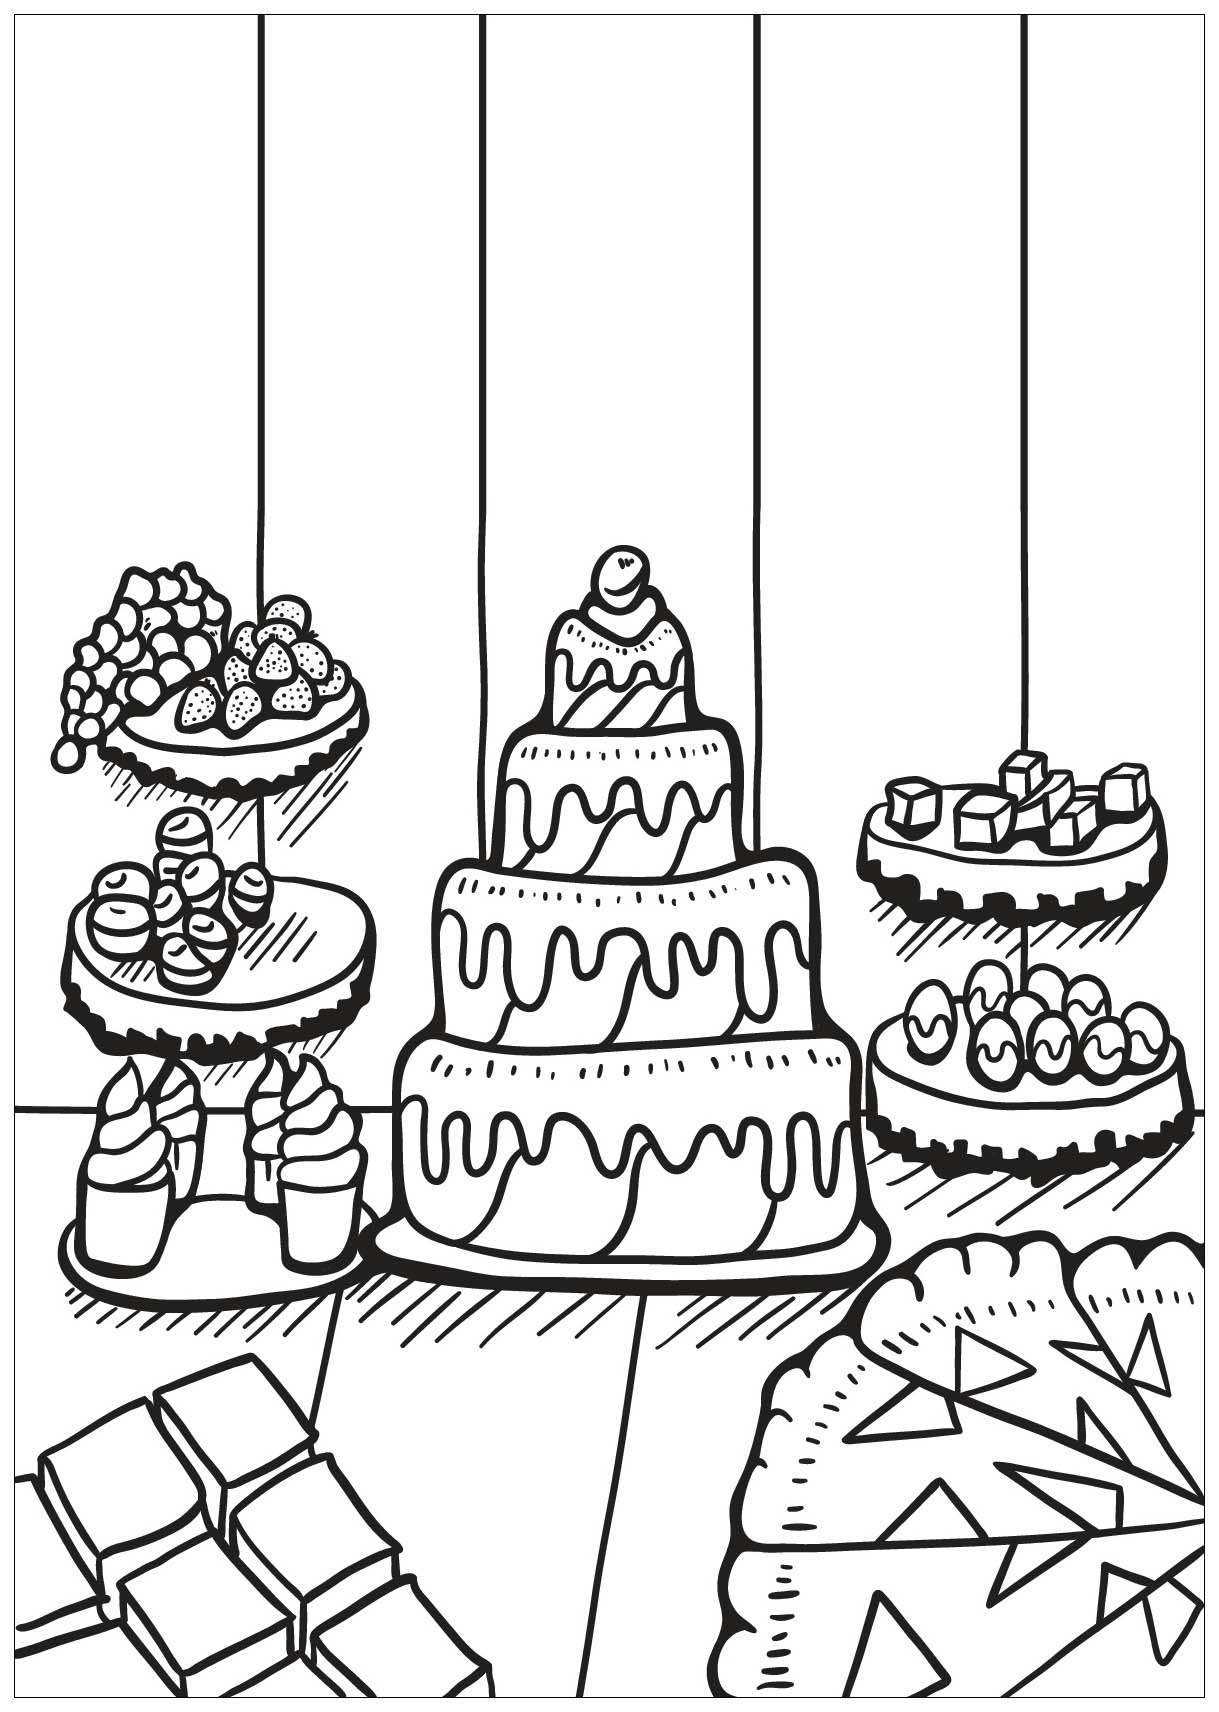 kids coloring pages nutrition foods - photo#22